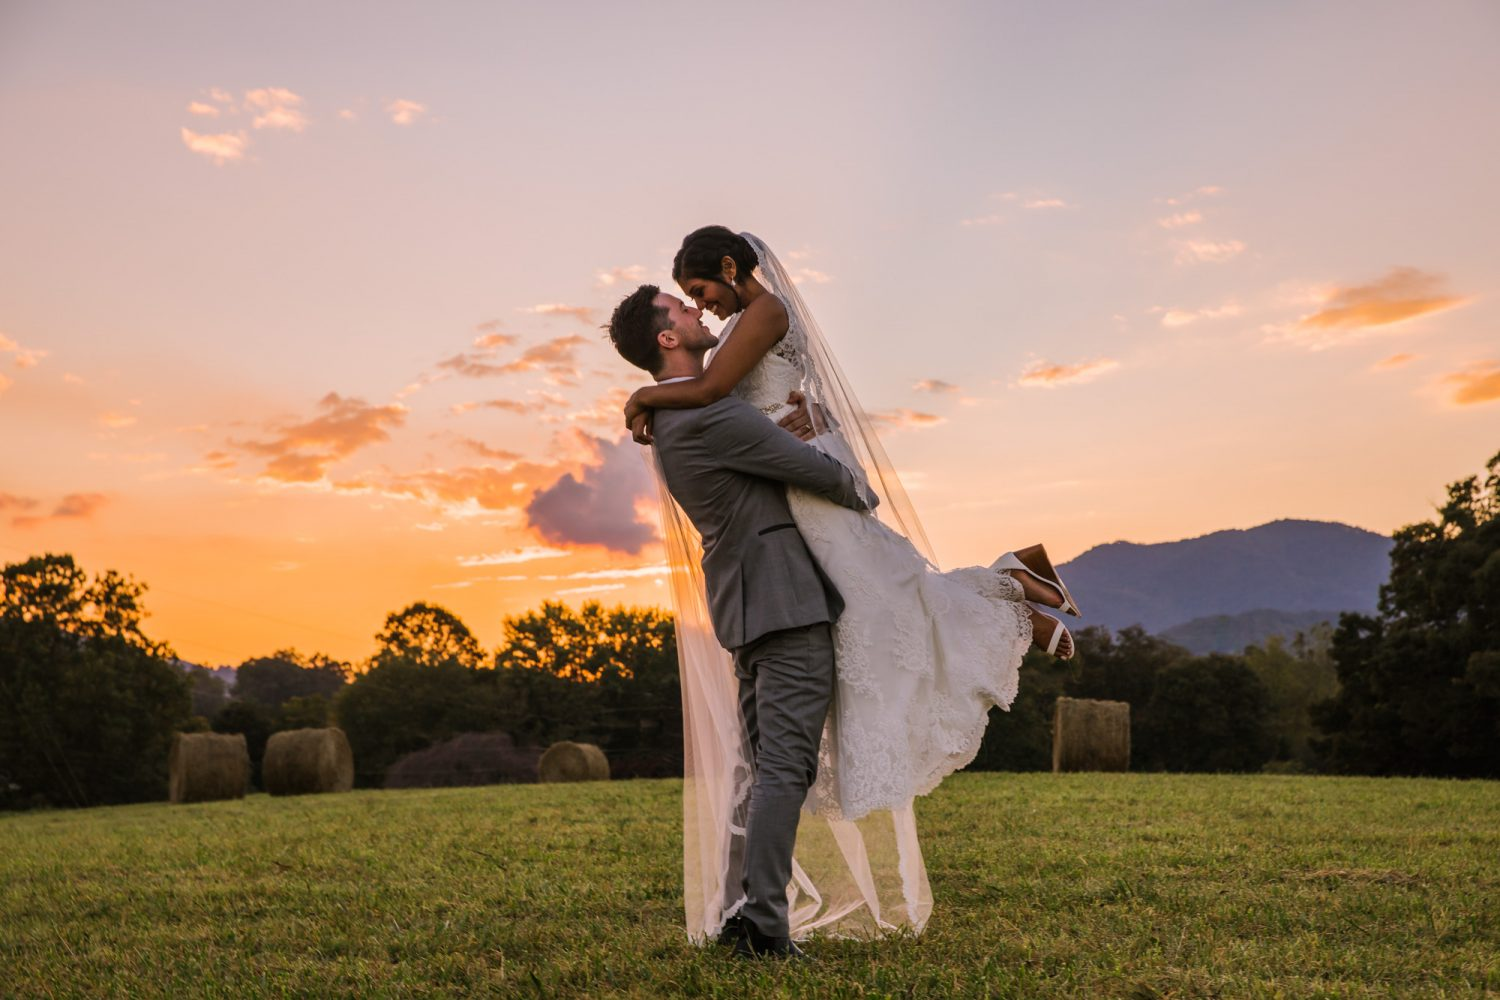 Waynesville NC Wedding Photography | Bride and Groom in the Field at Sunset